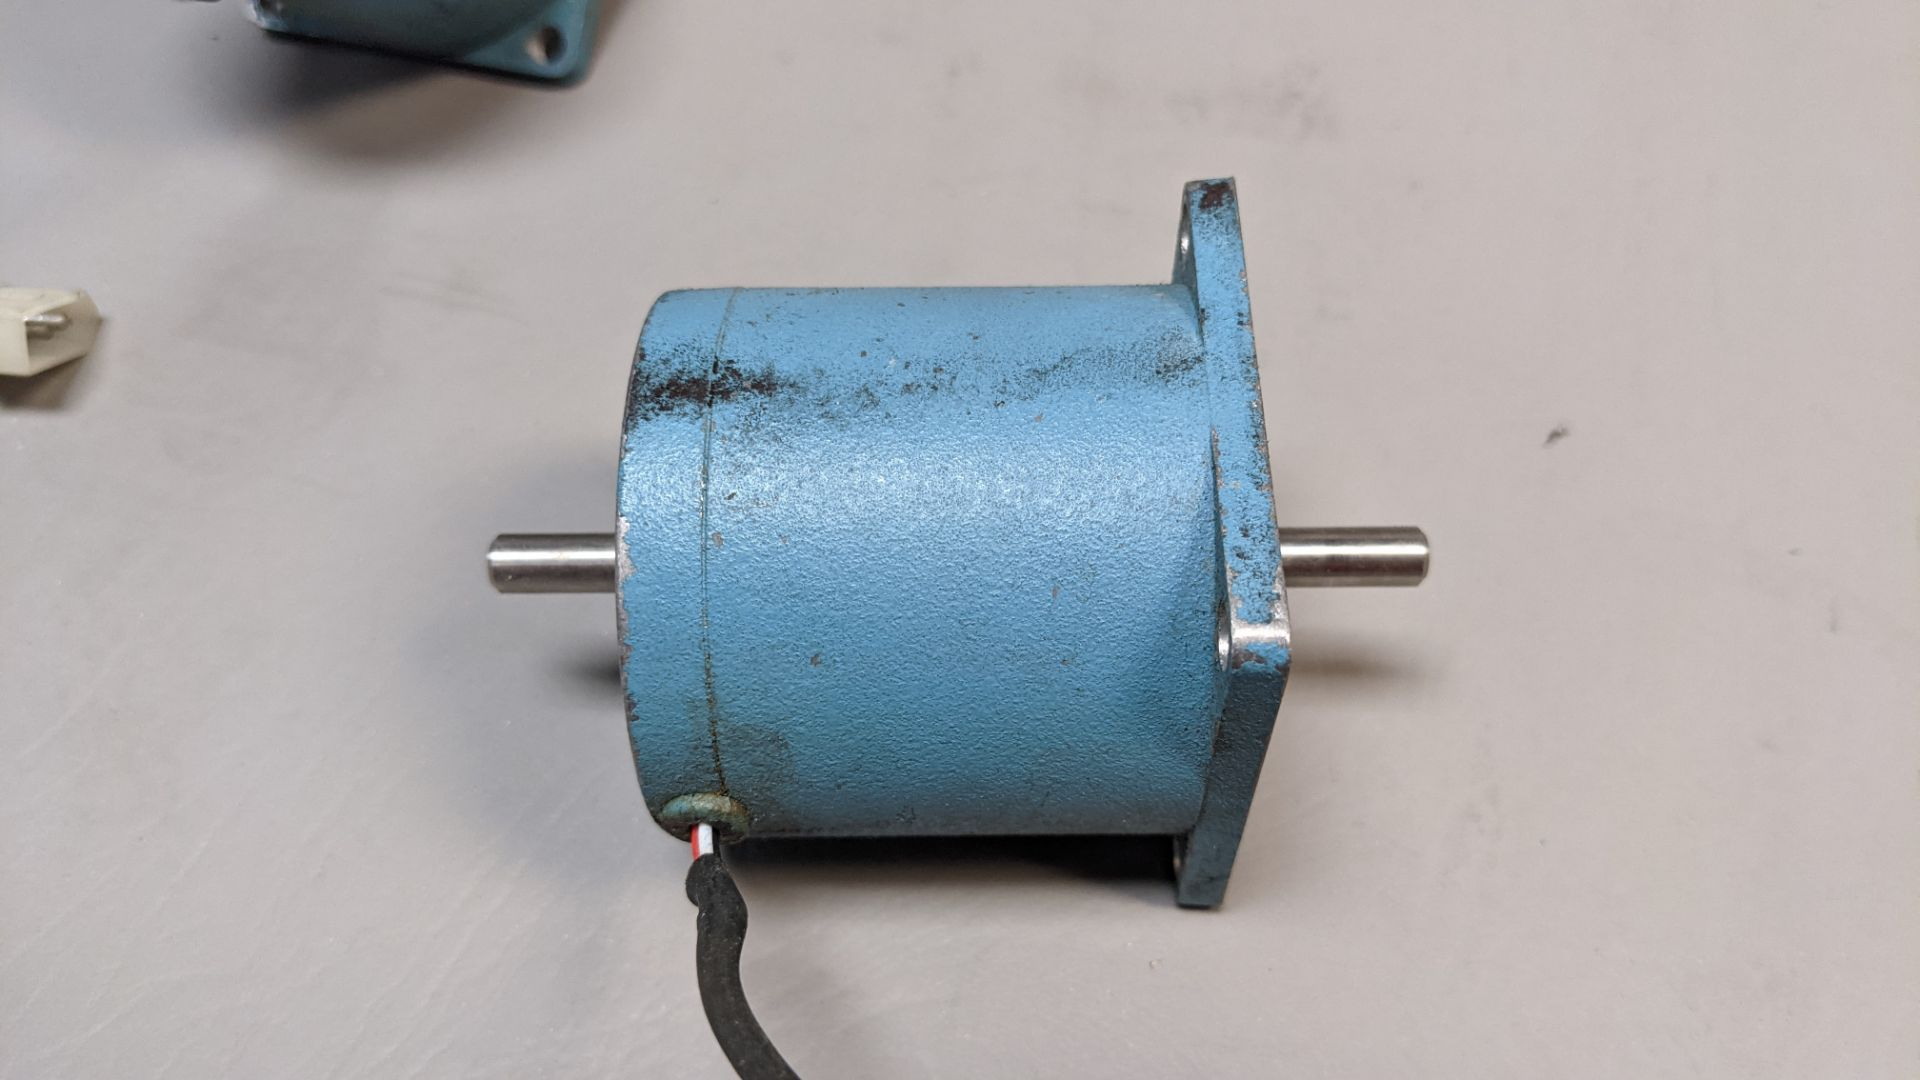 LOT OF 2 SUPERIOR ELECTRIC STEPPER MOTORS - Image 3 of 4